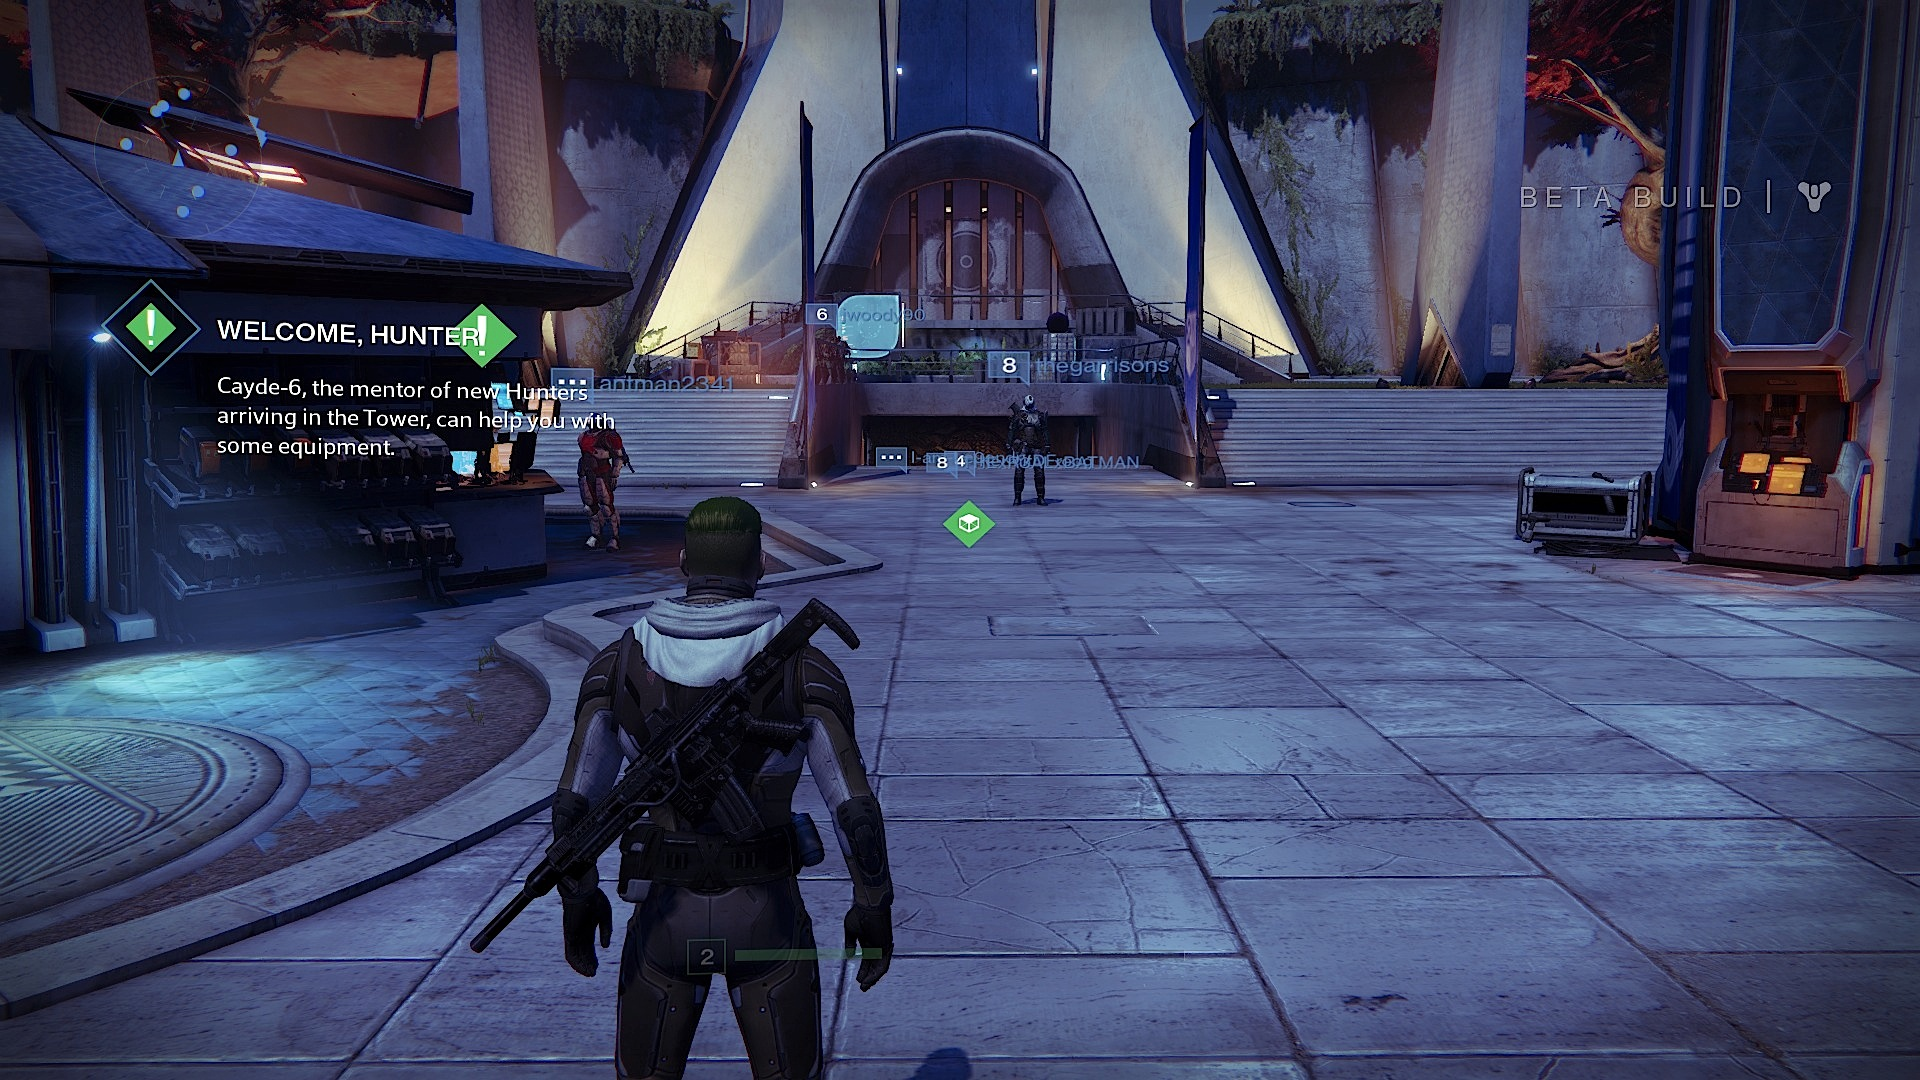 Destiny Dance Gif: Destiny Beta Offline: When It's Back, Rewards & Secrets